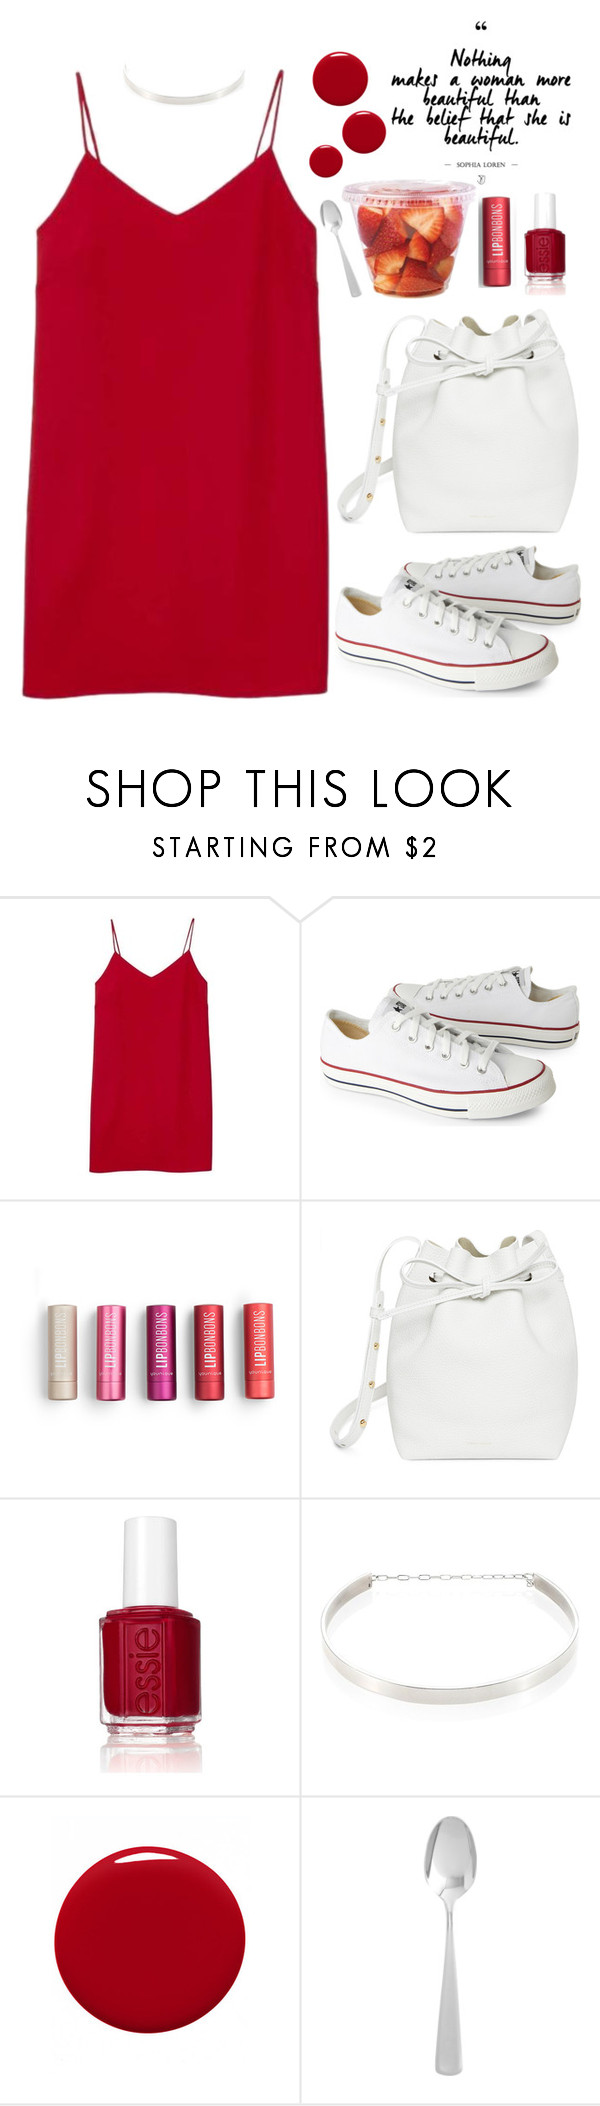 """""""Untitled #36"""" by kell-a ❤ liked on Polyvore featuring Alexia Ulibarri, Converse, Mansur Gavriel, Essie, Jennifer Zeuner, Givenchy and Pier 1 Imports"""